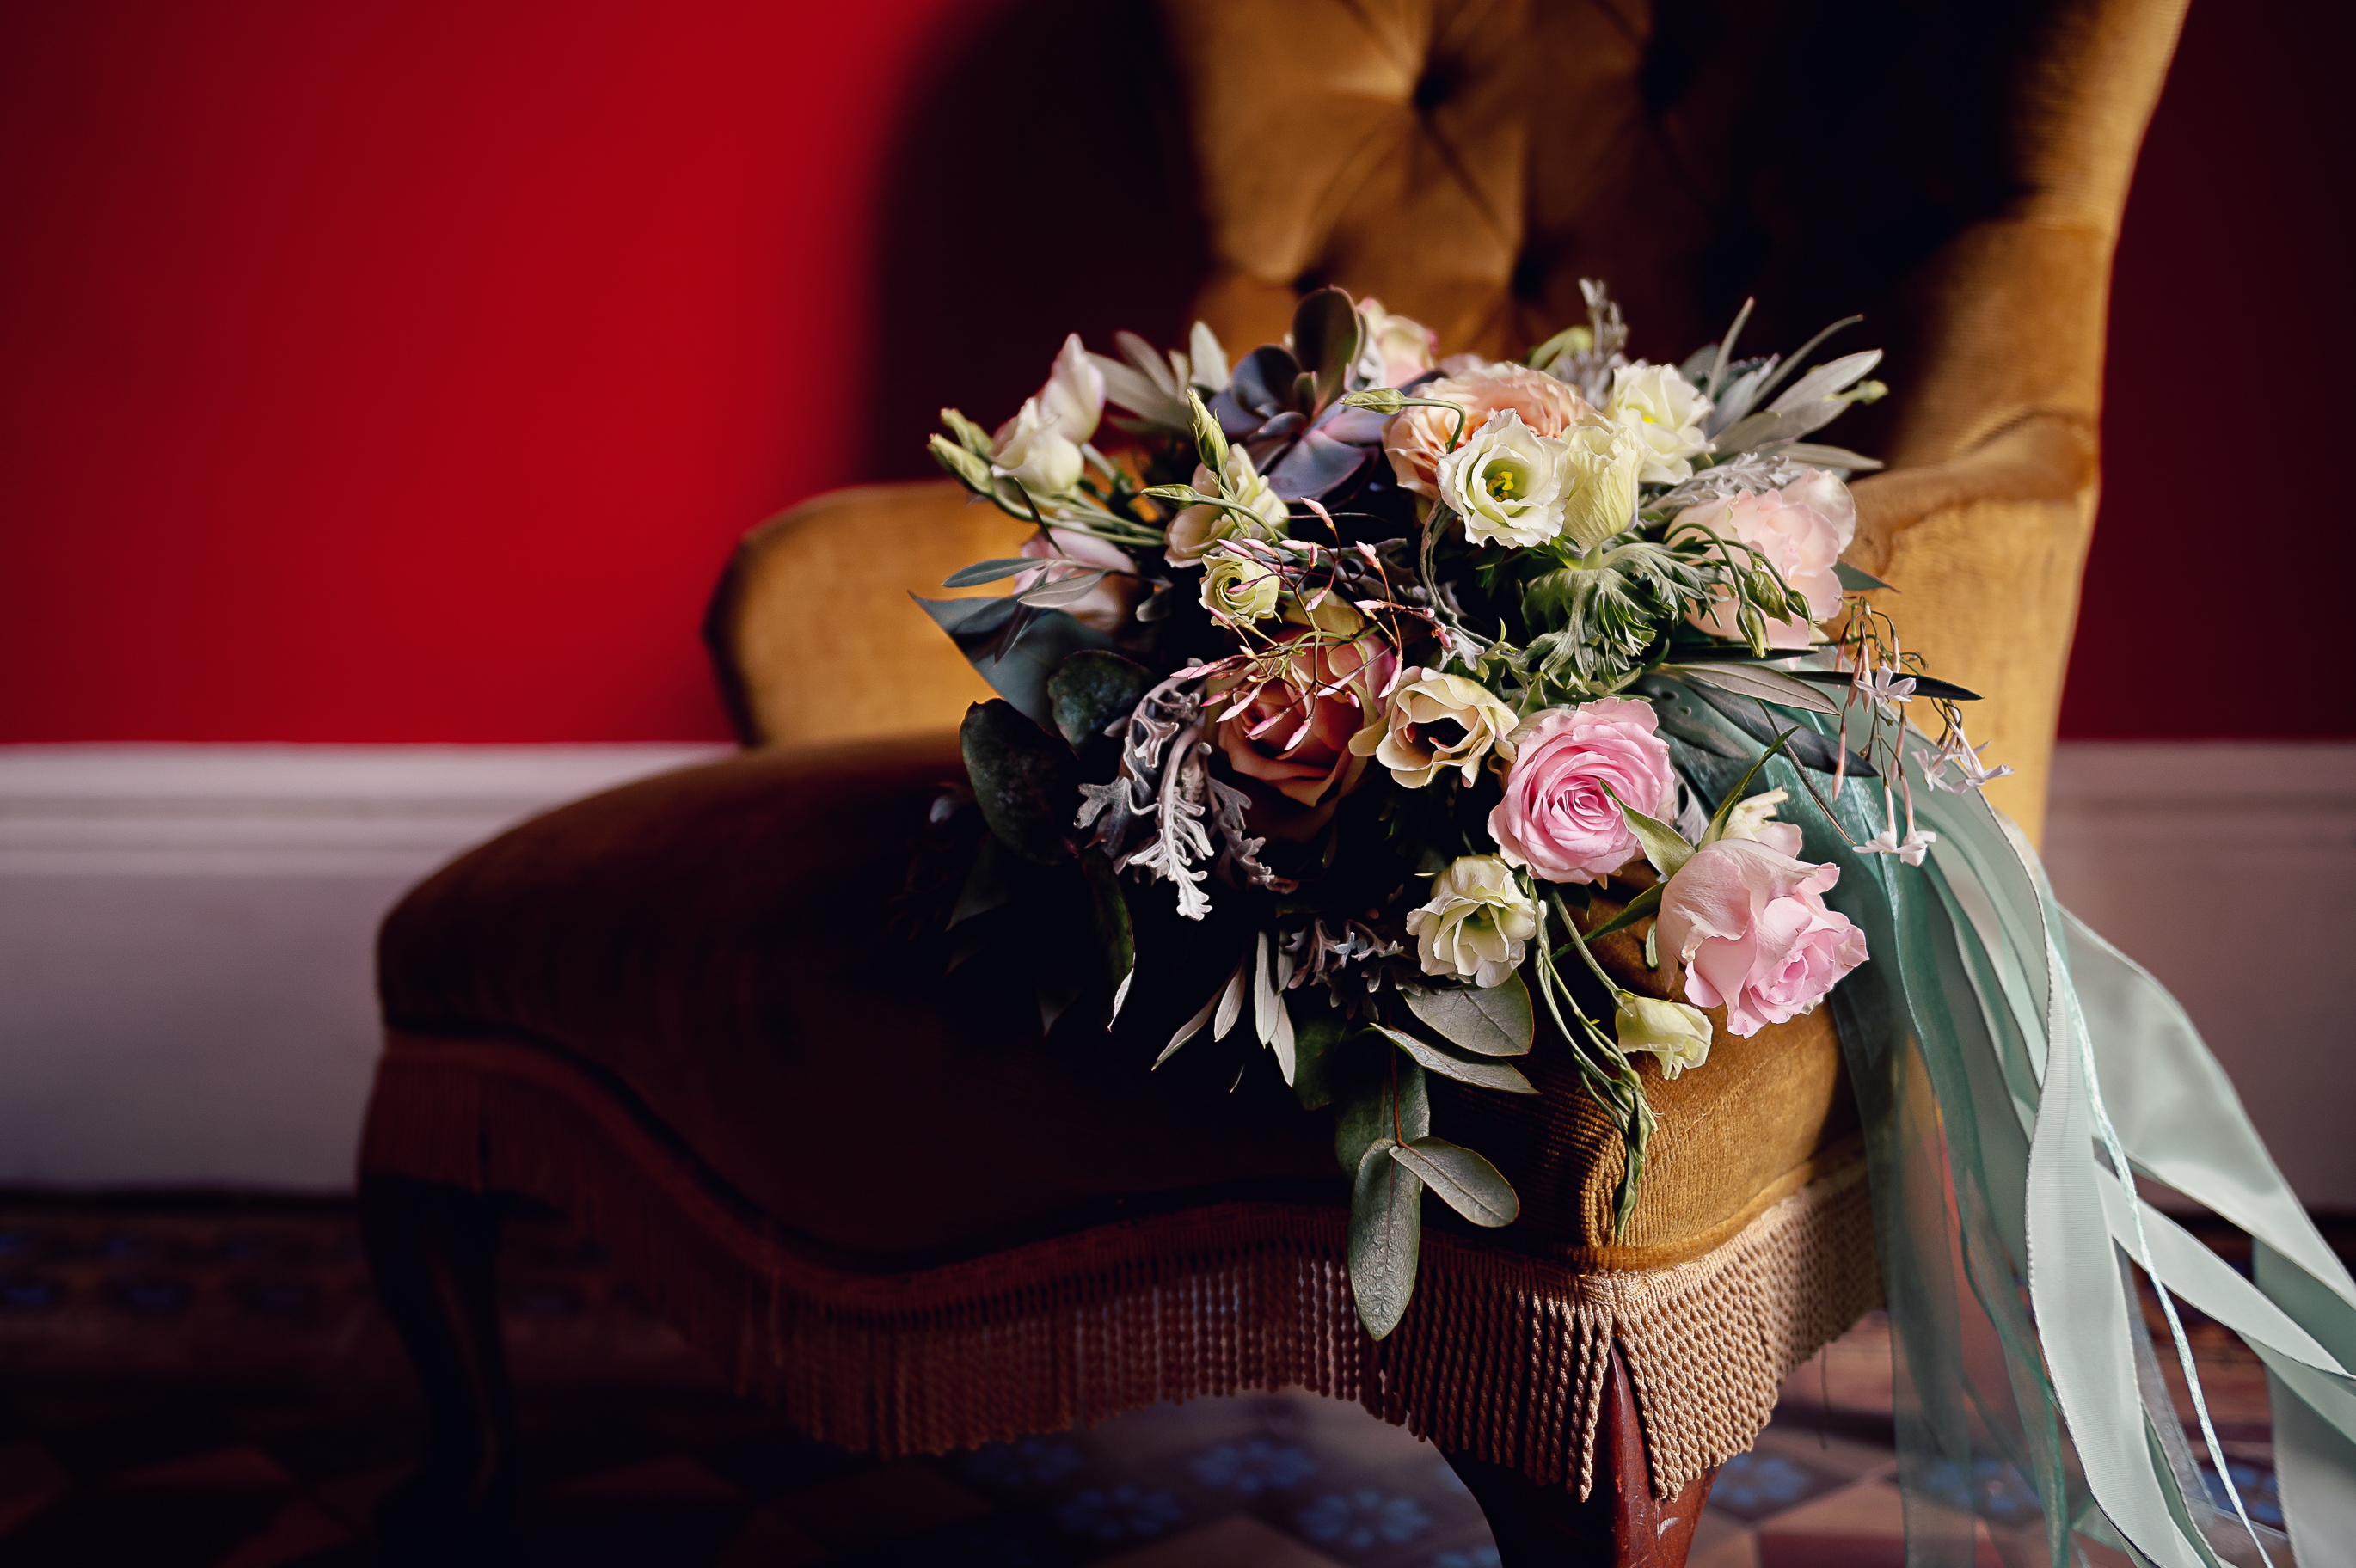 Buy Wedding Flowers & Wedding Bouquets Online